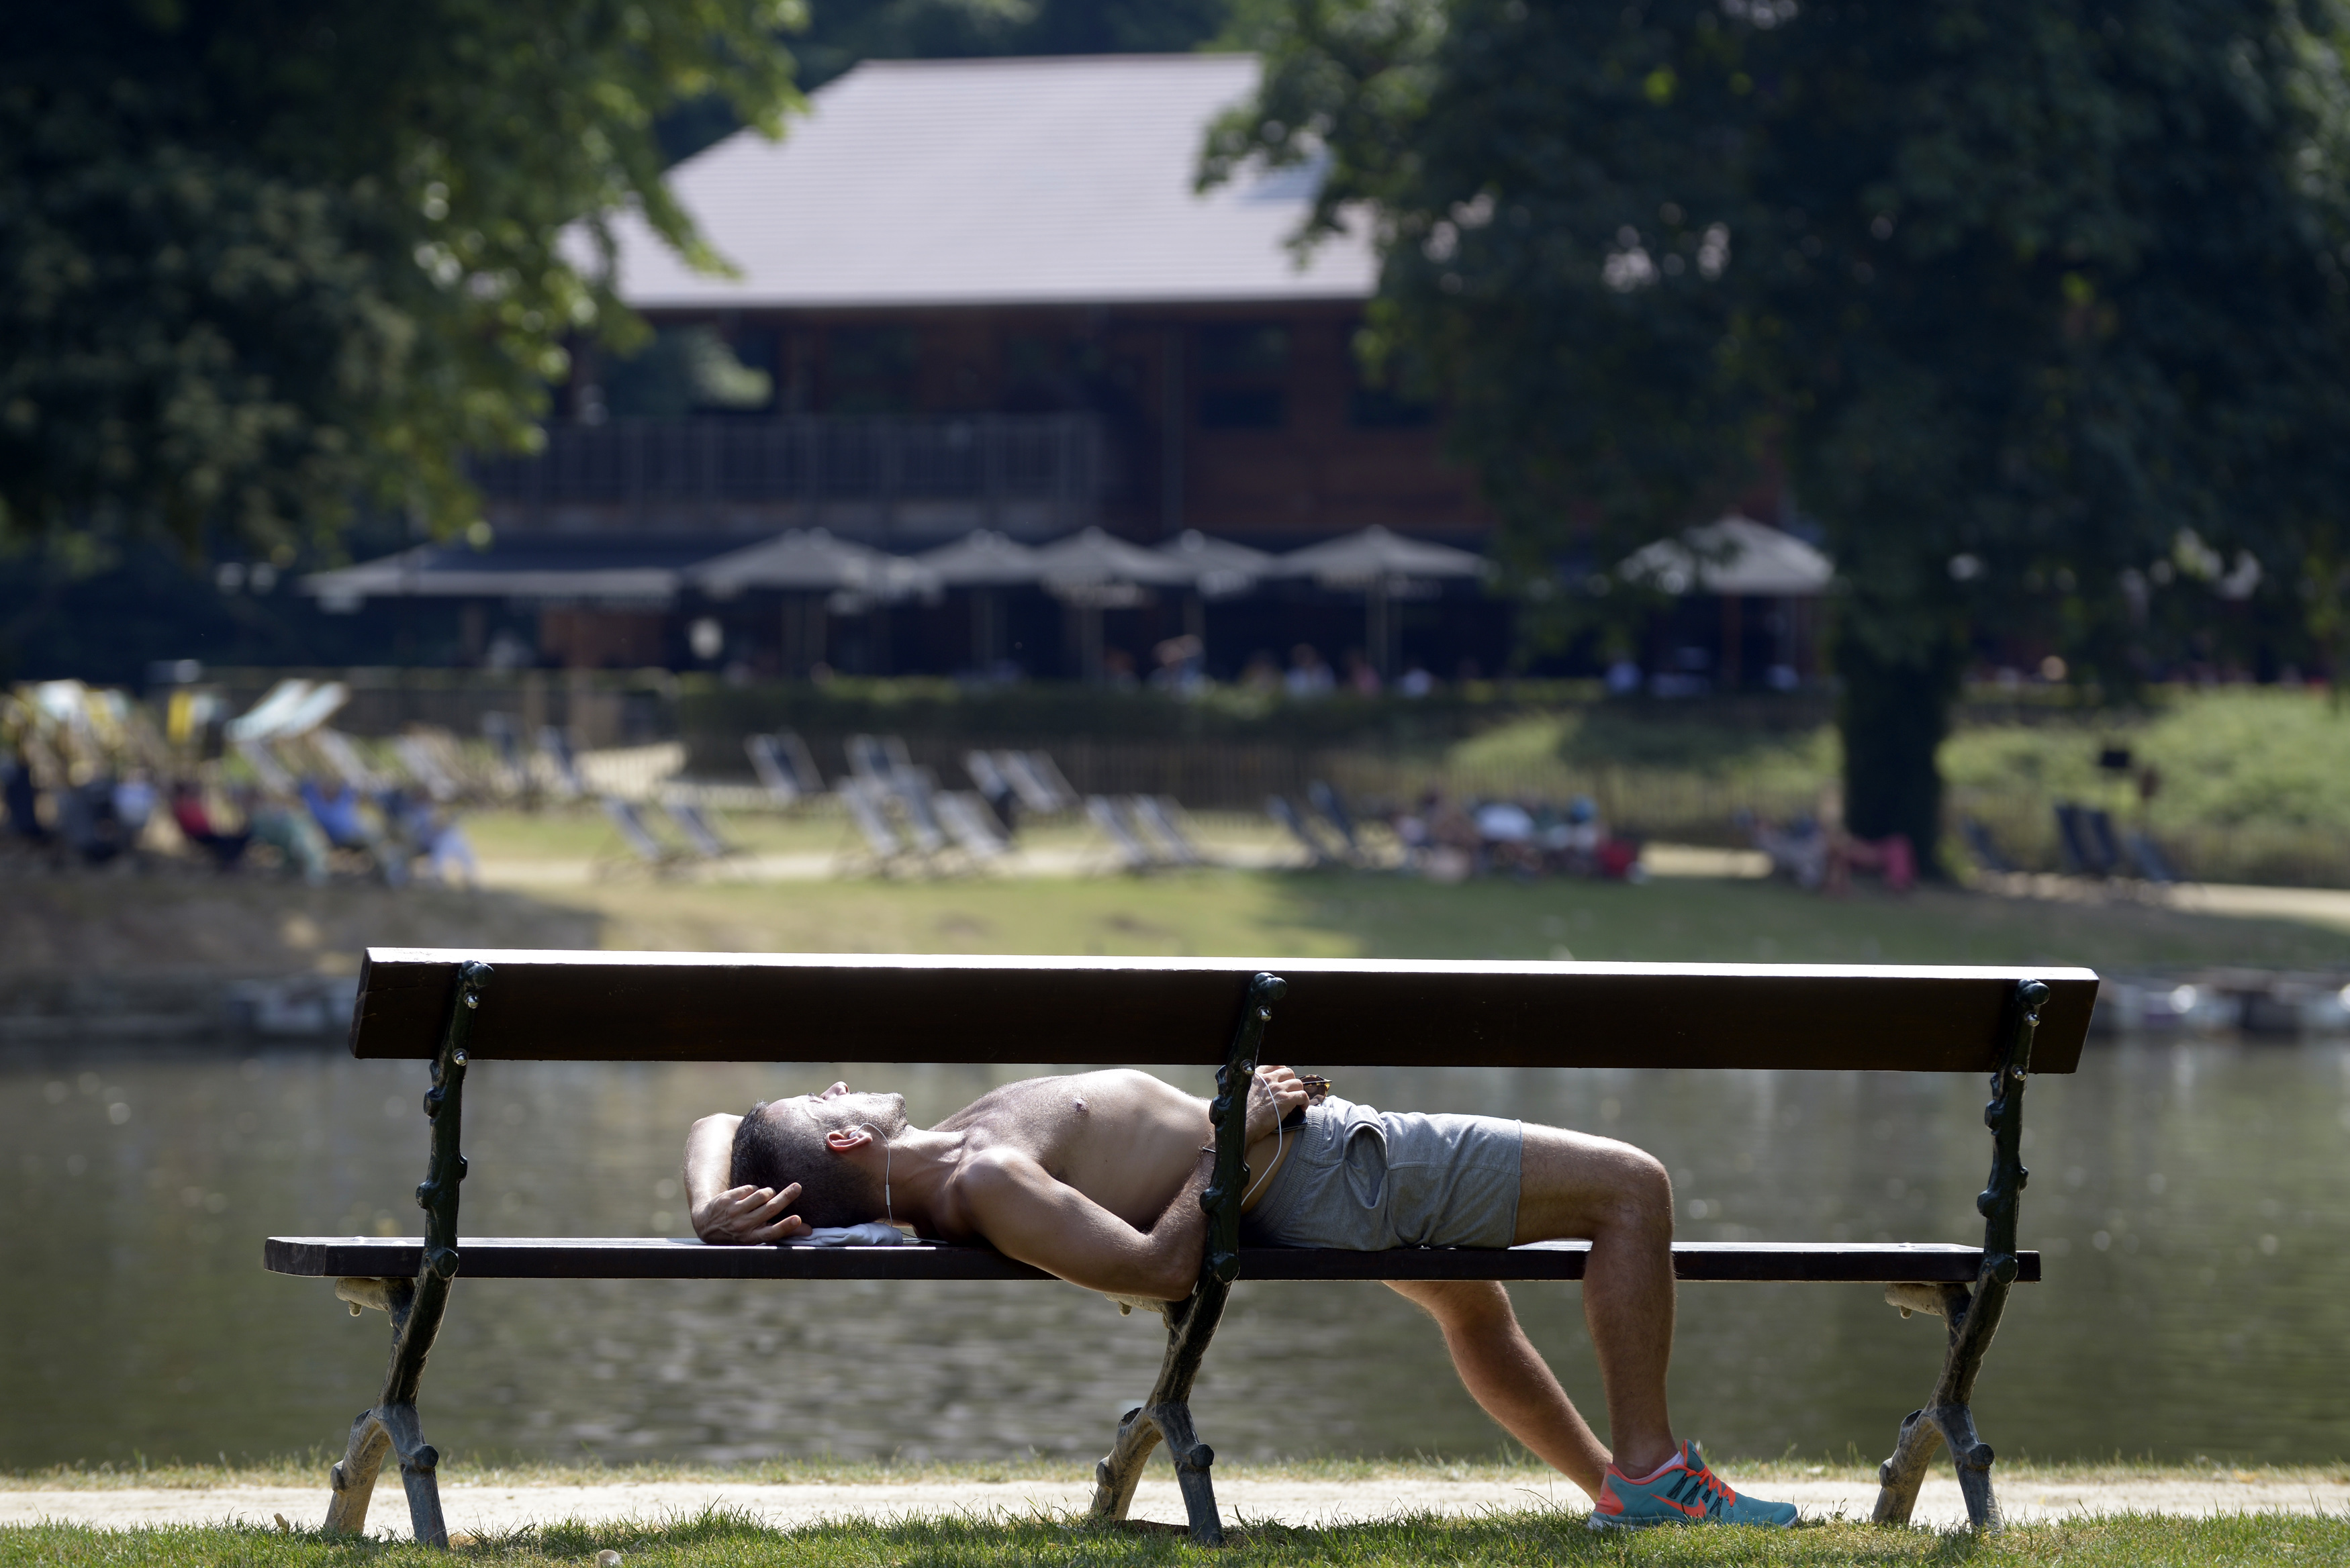 A man sleeps on a bench in a park during a heat wave in Brussels, July 23, 2013.